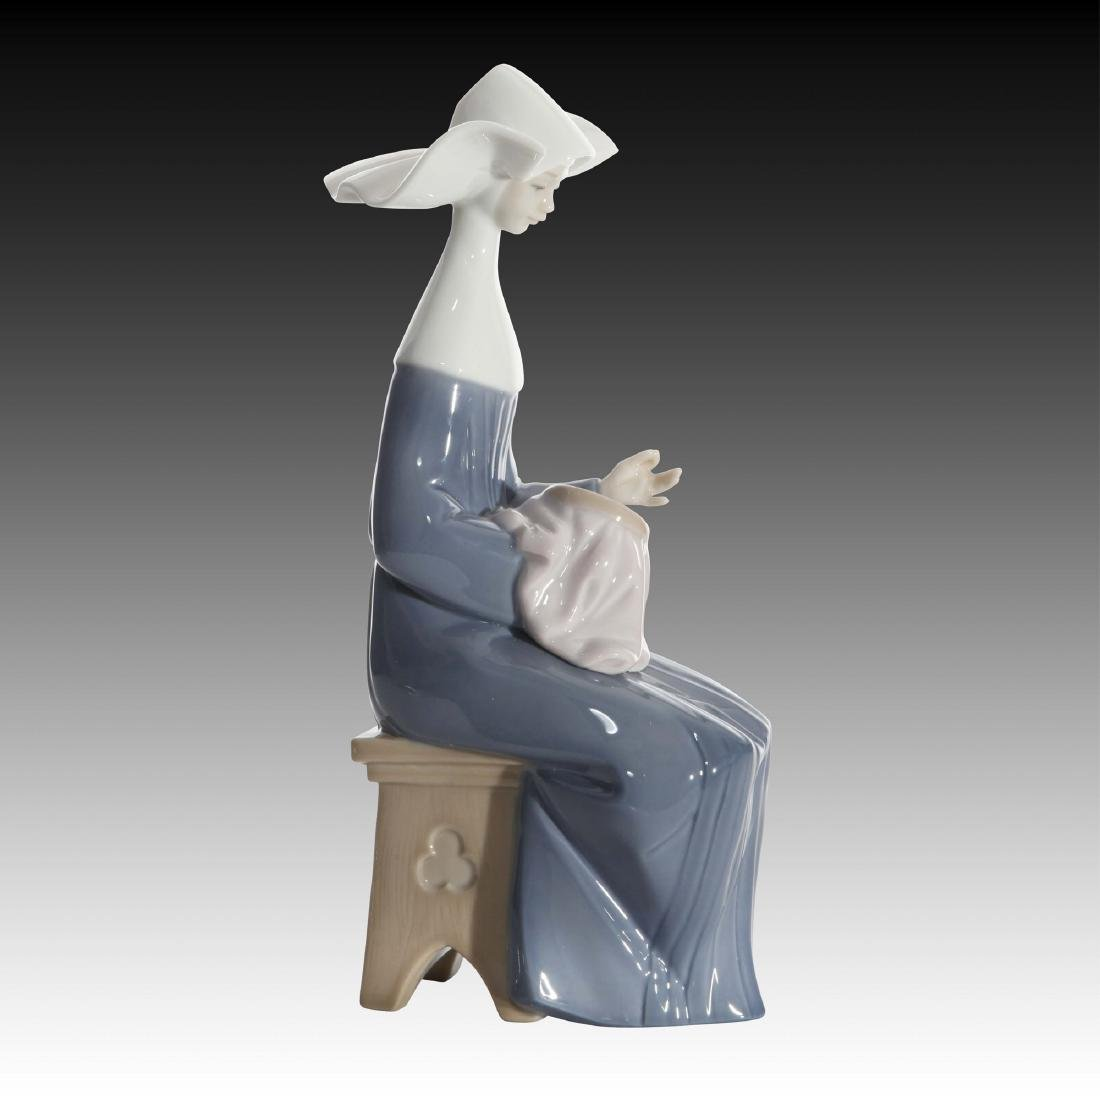 LLADRO TIME TO SEW FIGURINE 5501 RETIRED 1991 - 2